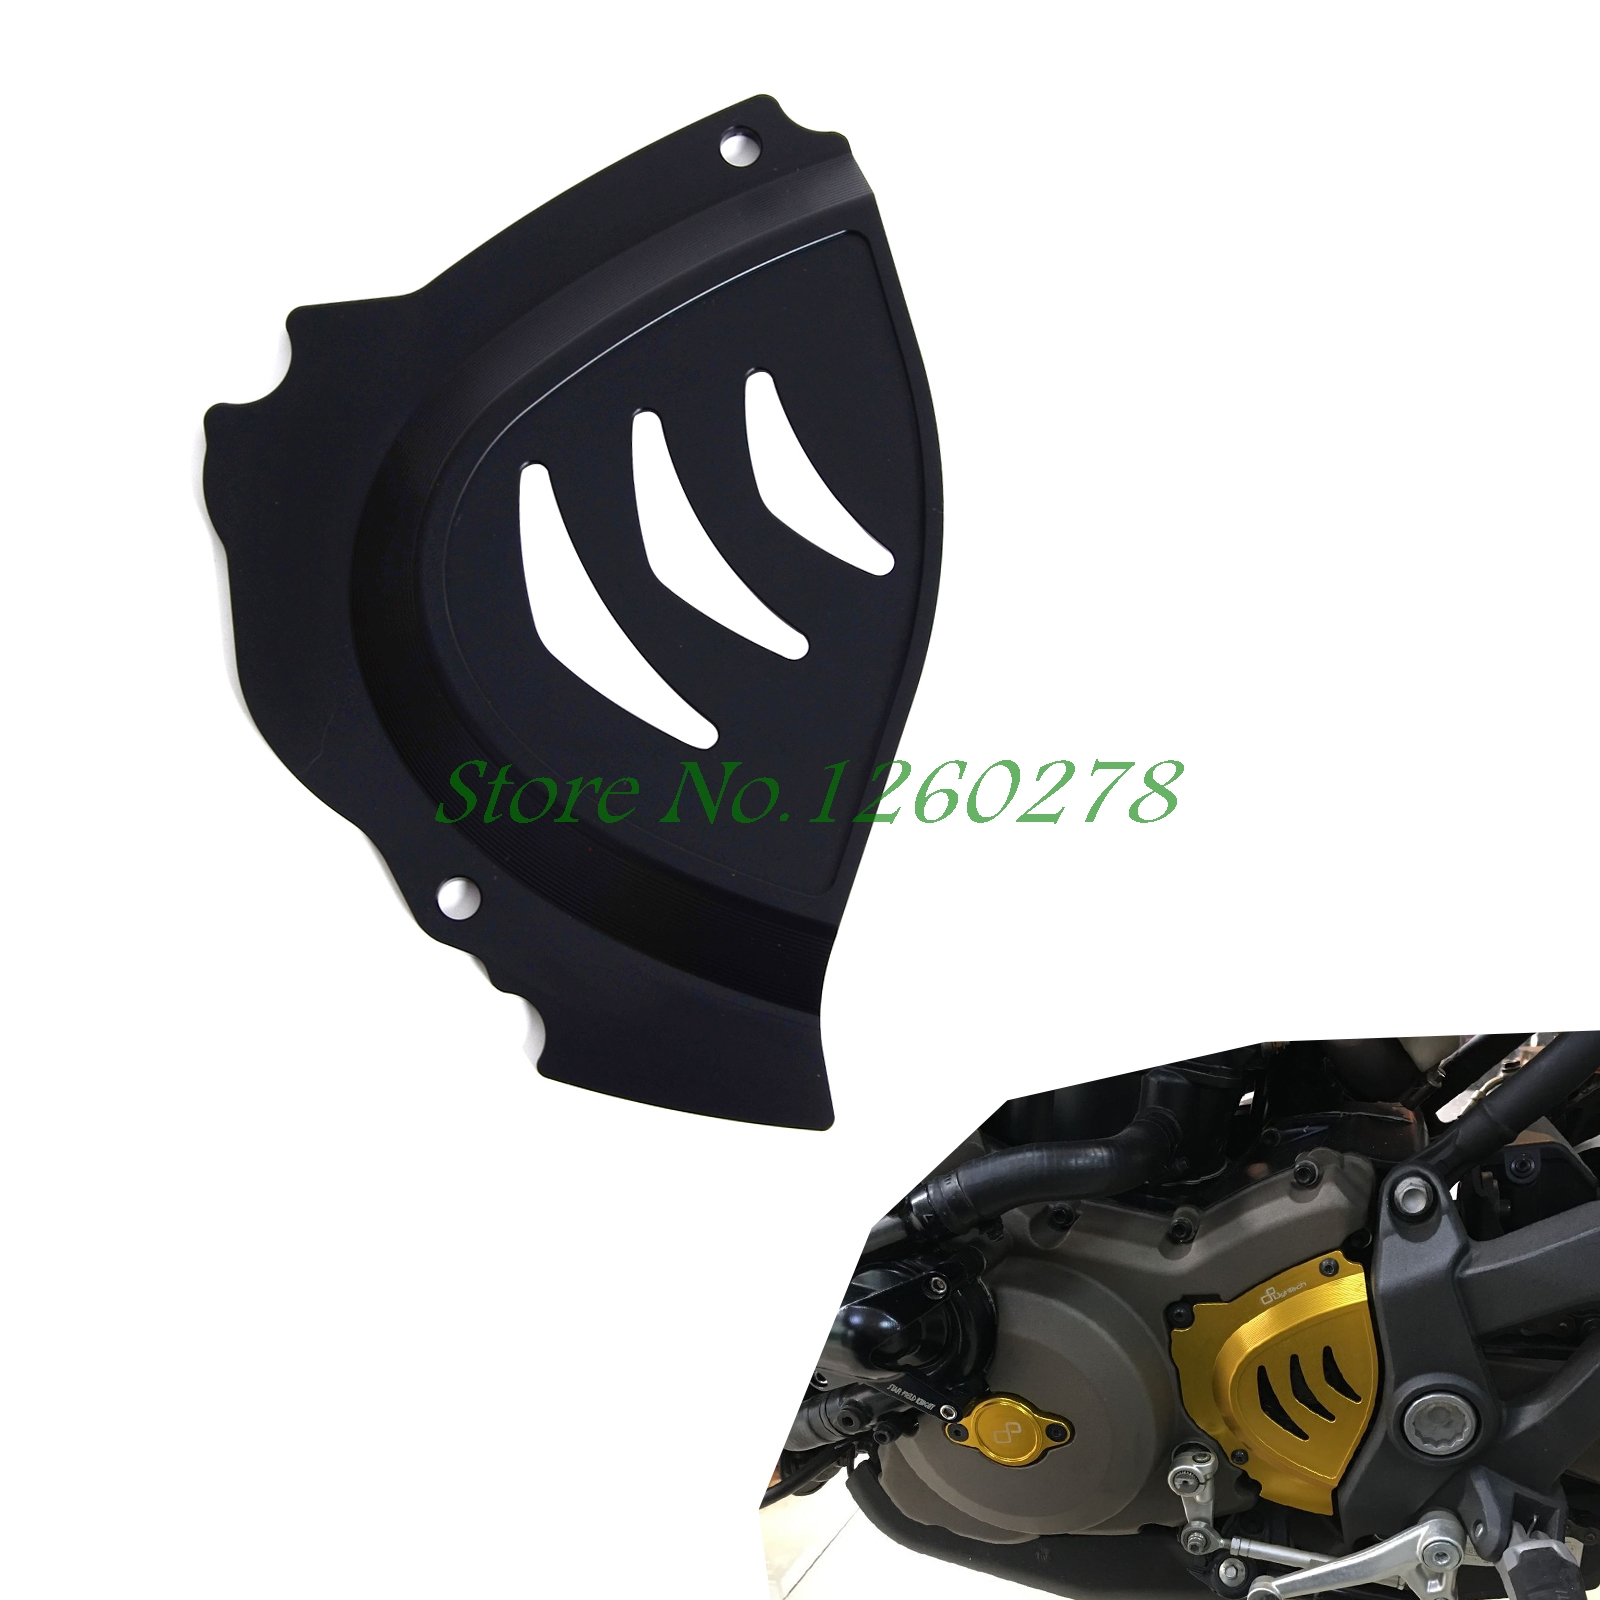 ФОТО Billet Aluminum Front Sprocket Chain Cover For Ducati  Monster 821 1200 S 2014 2015 2016